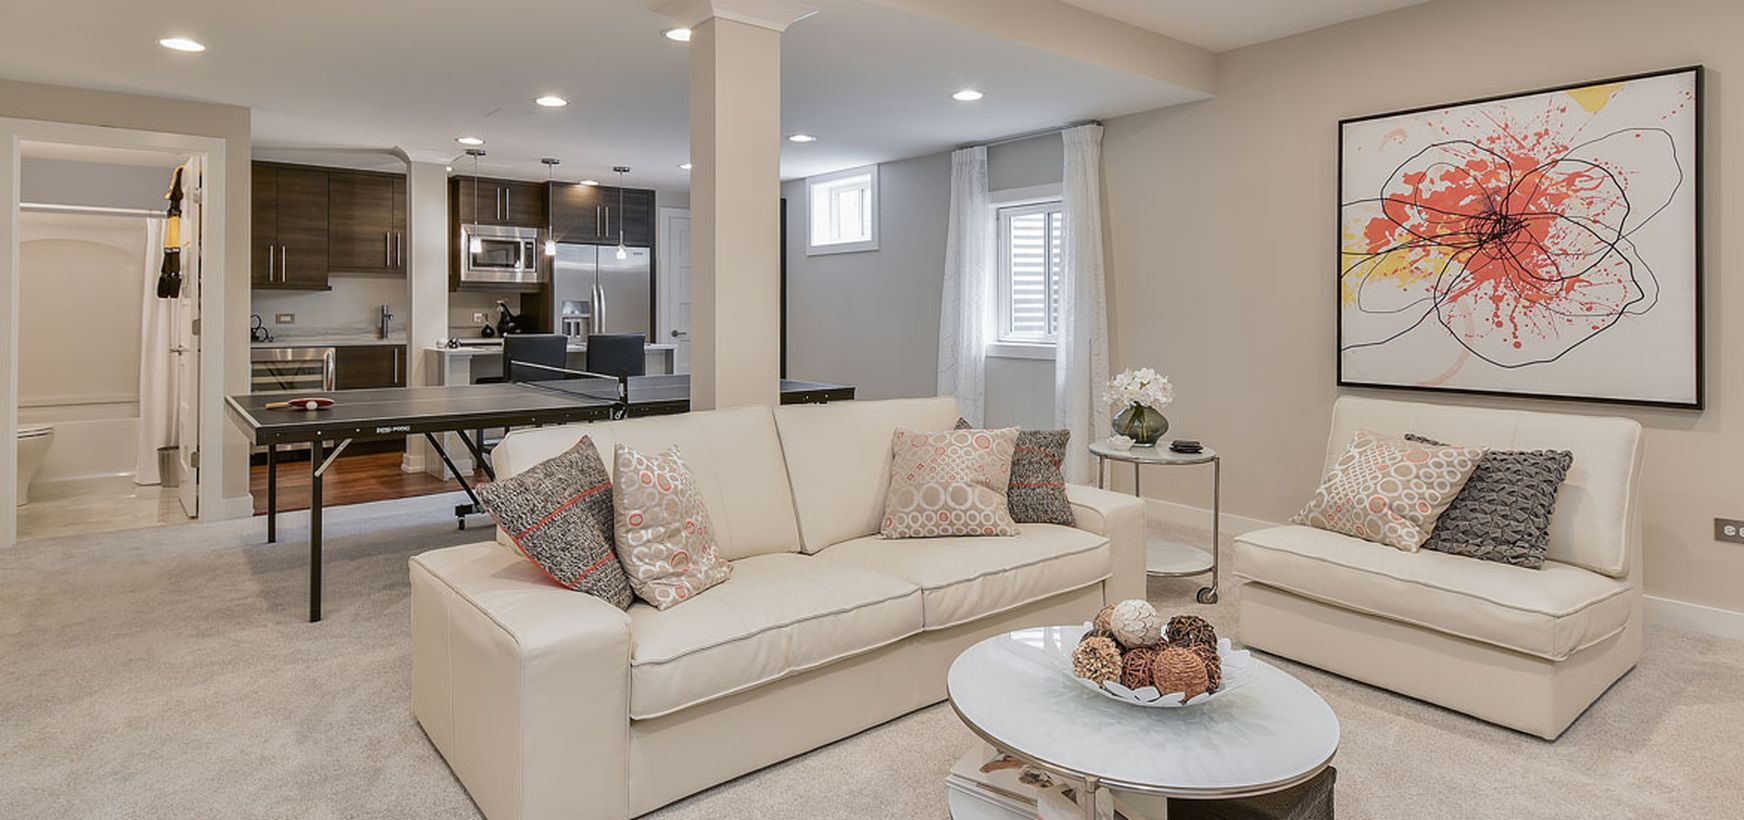 Basement with white latter l sofa and bar decoration